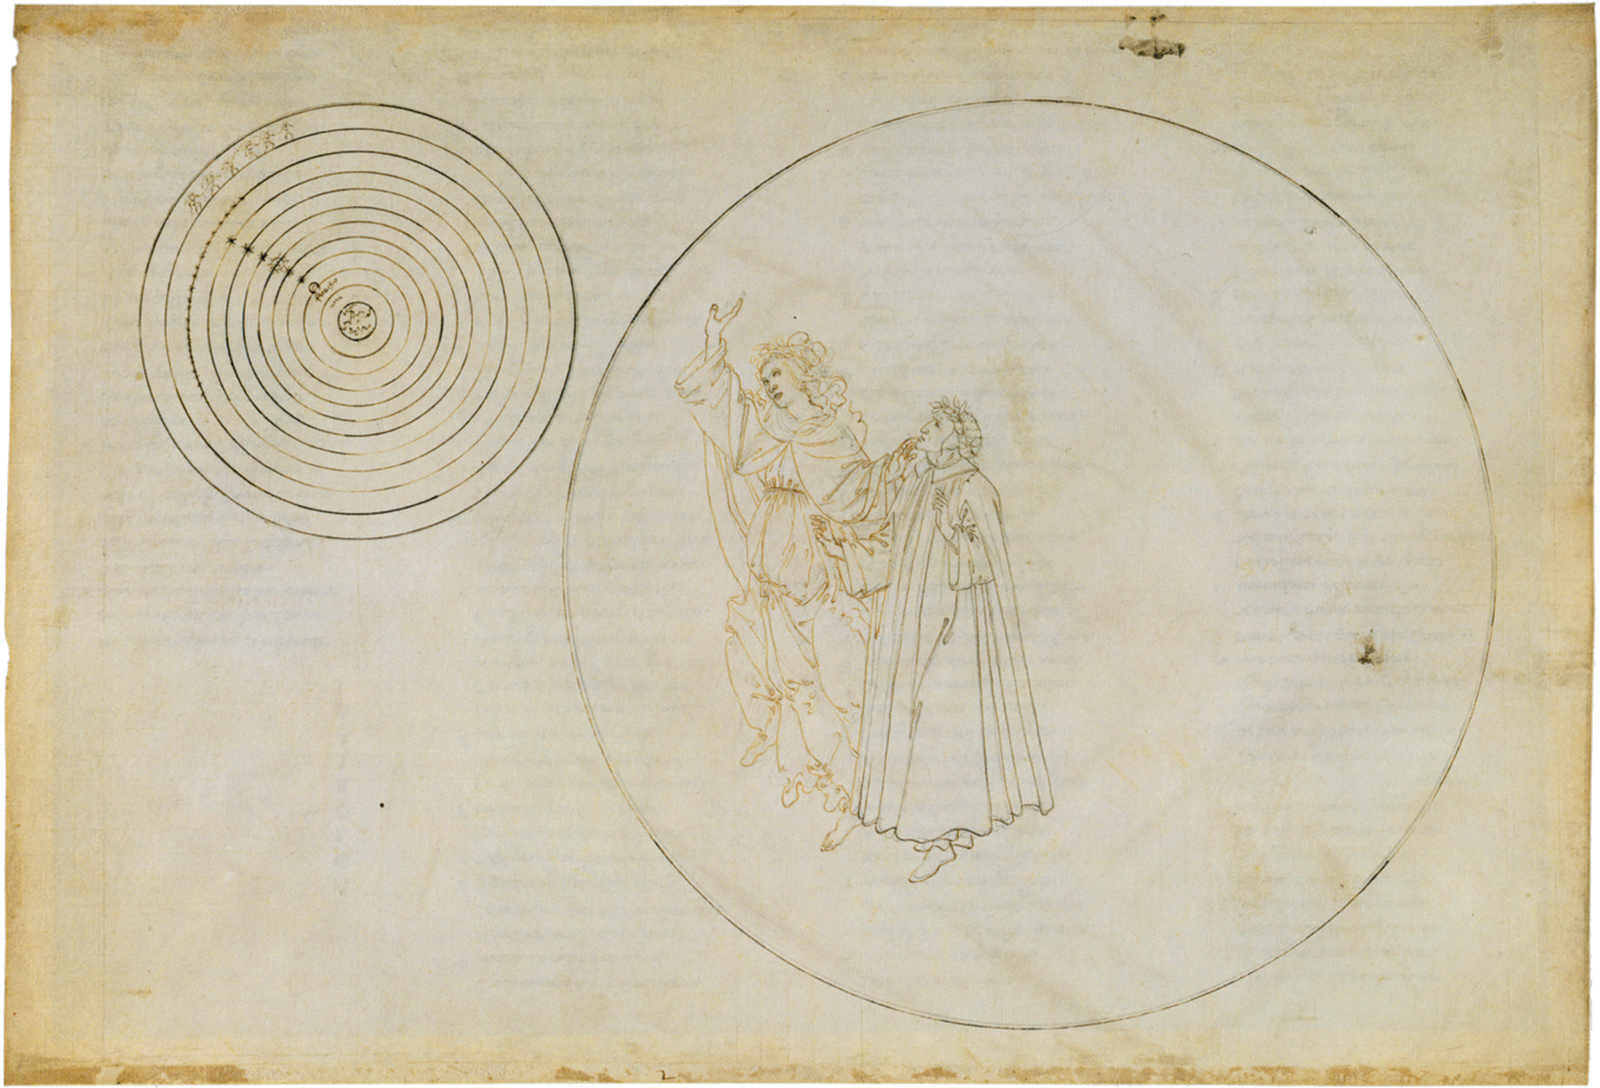 'Paradiso II'; Dante and Beatrice in the sphere of the moon, with Beatrice explaining the nature of the heavens; illustration by Sandro Botticelli, circa 1490